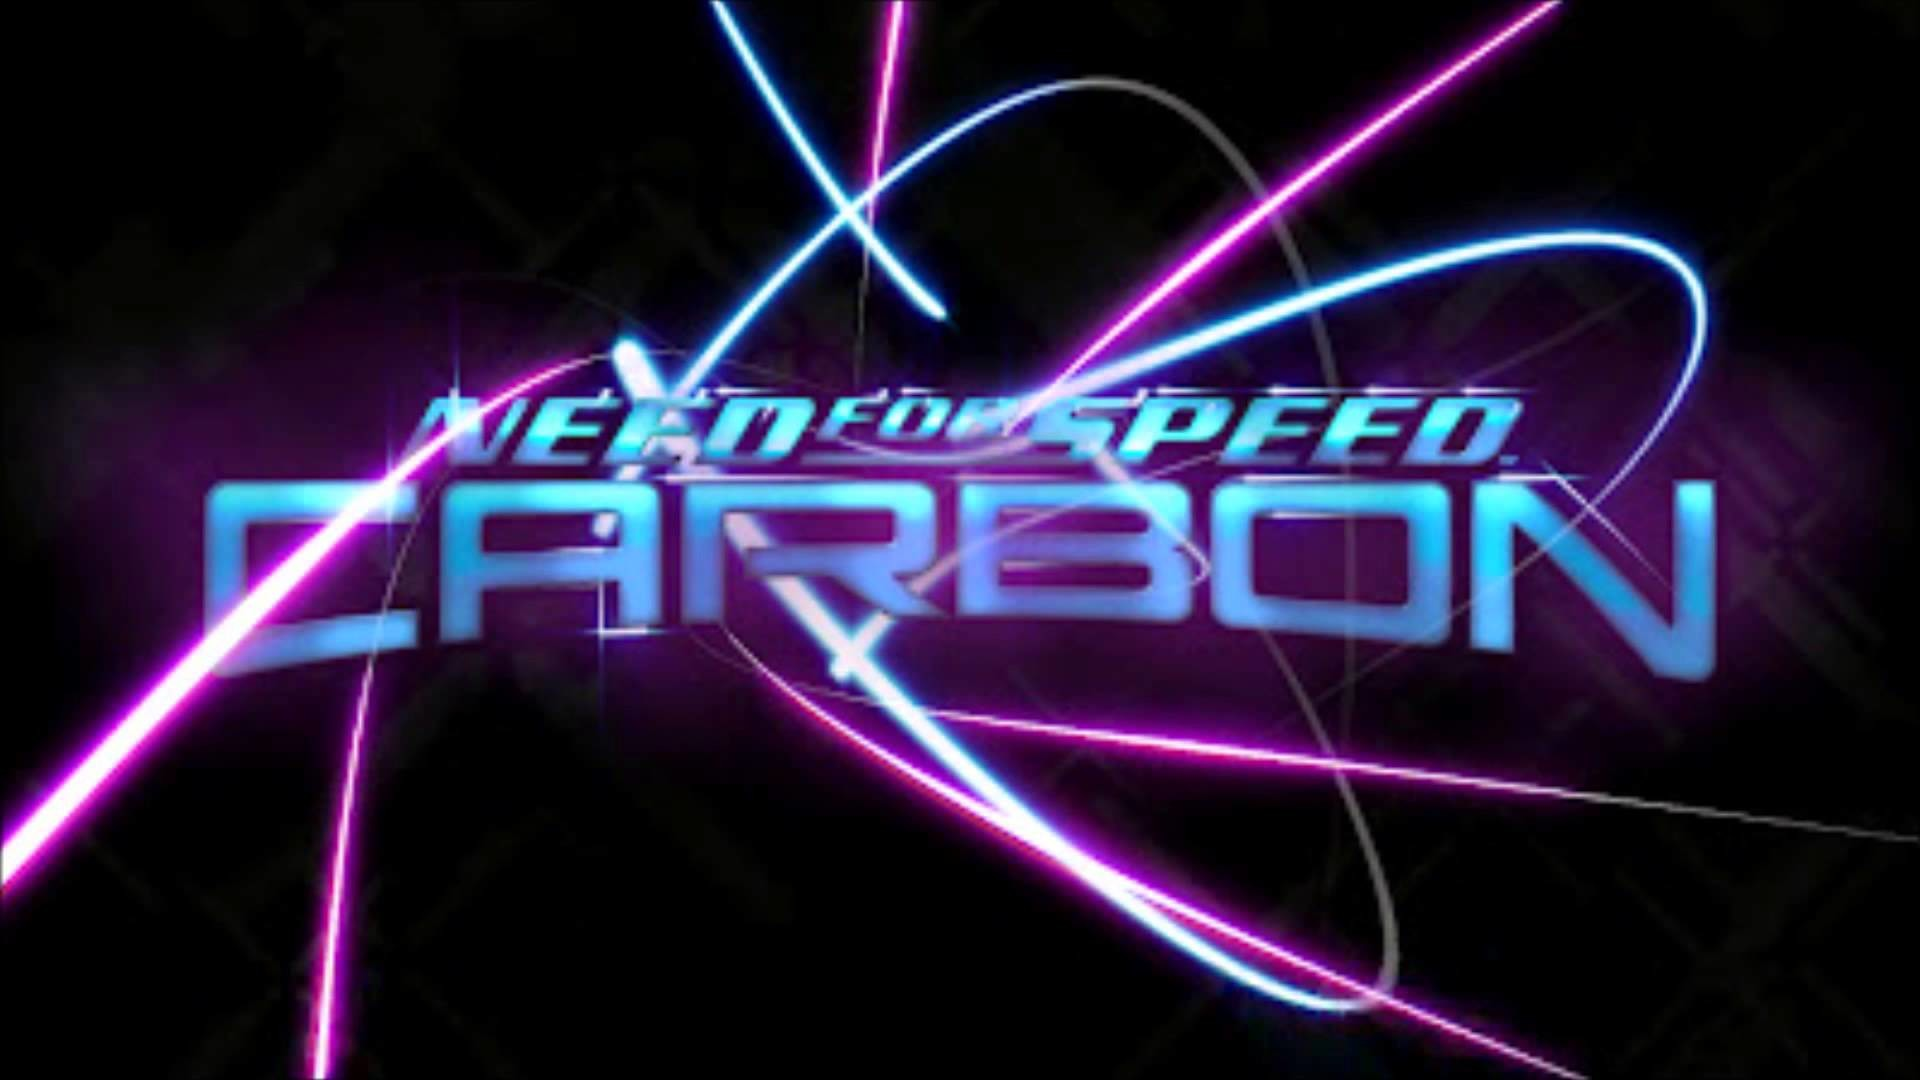 Need for speed carbon wallpaper wallpapertag - Speed wallpaper ...